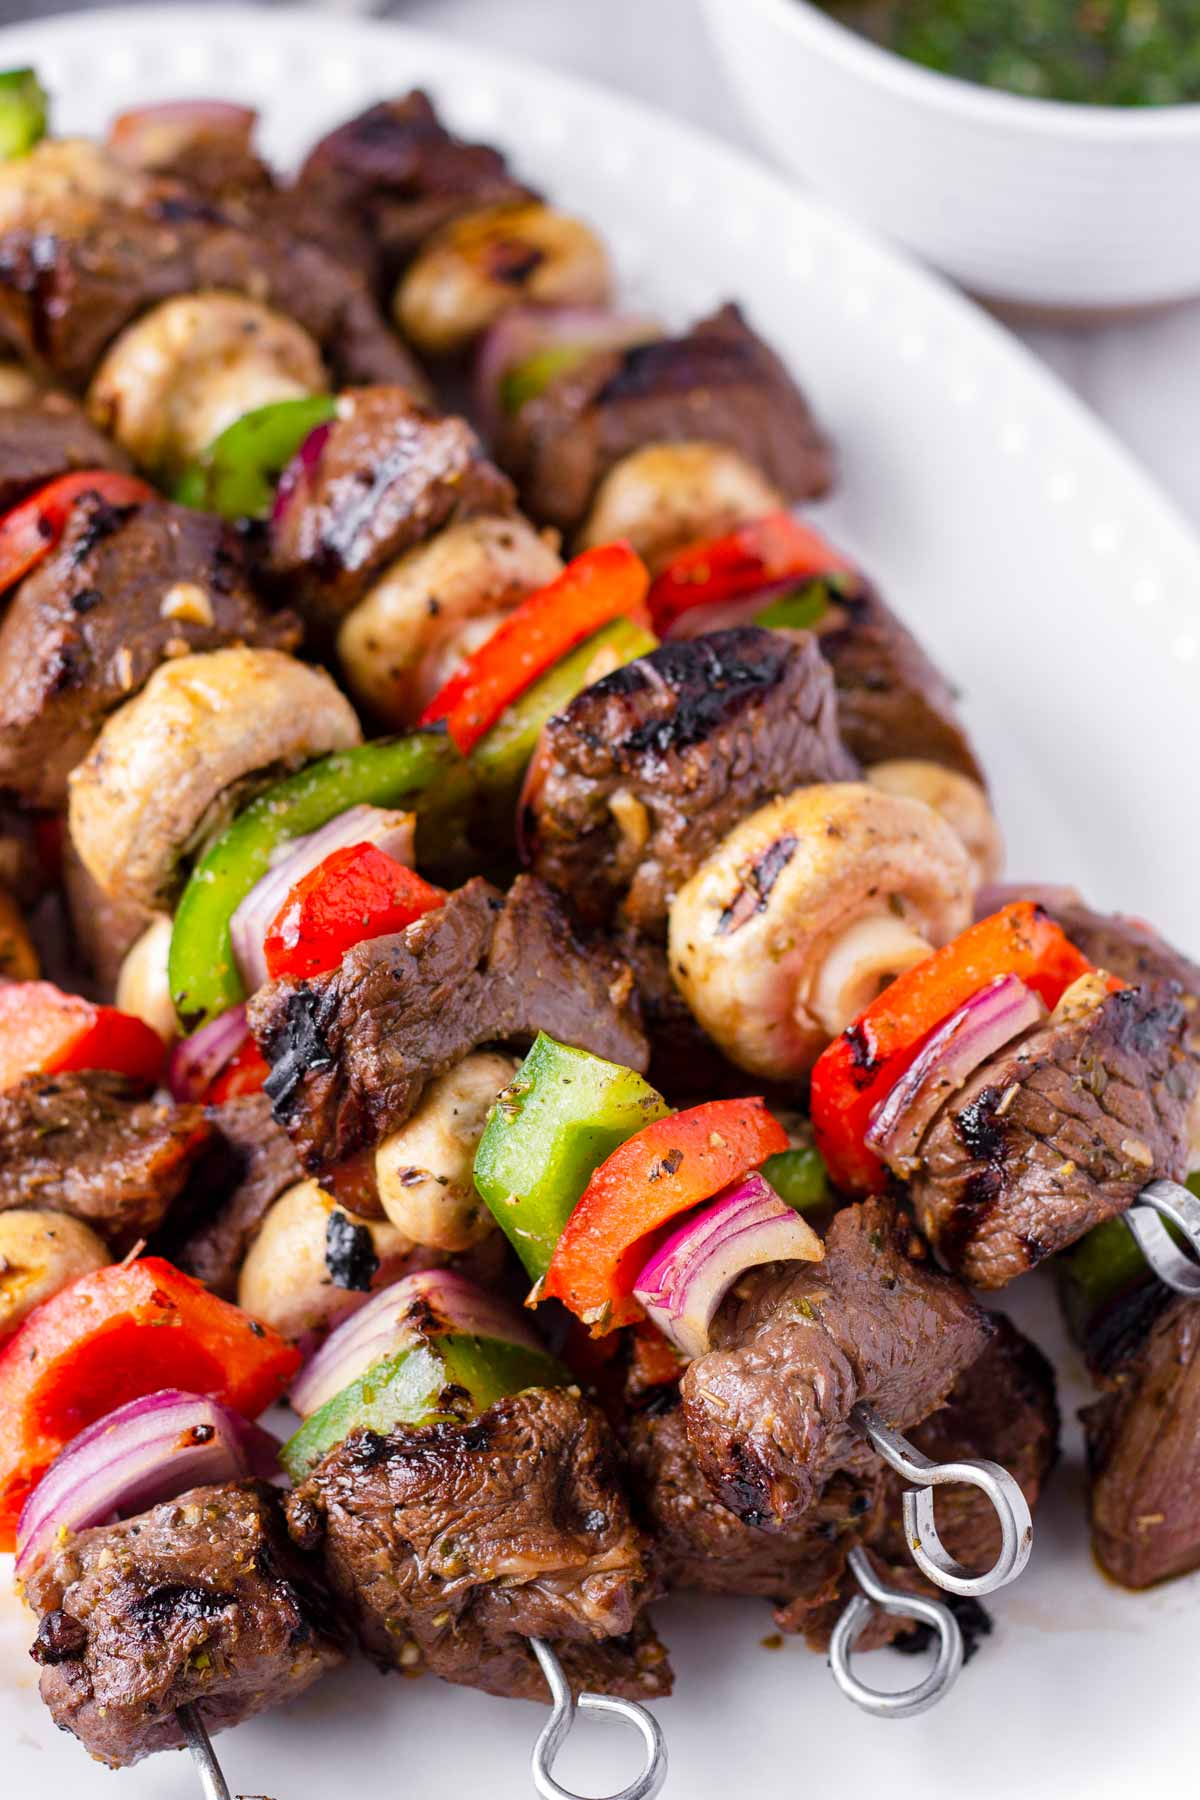 grilled steak kabobs with peppers, mushrooms, and onions on a plate